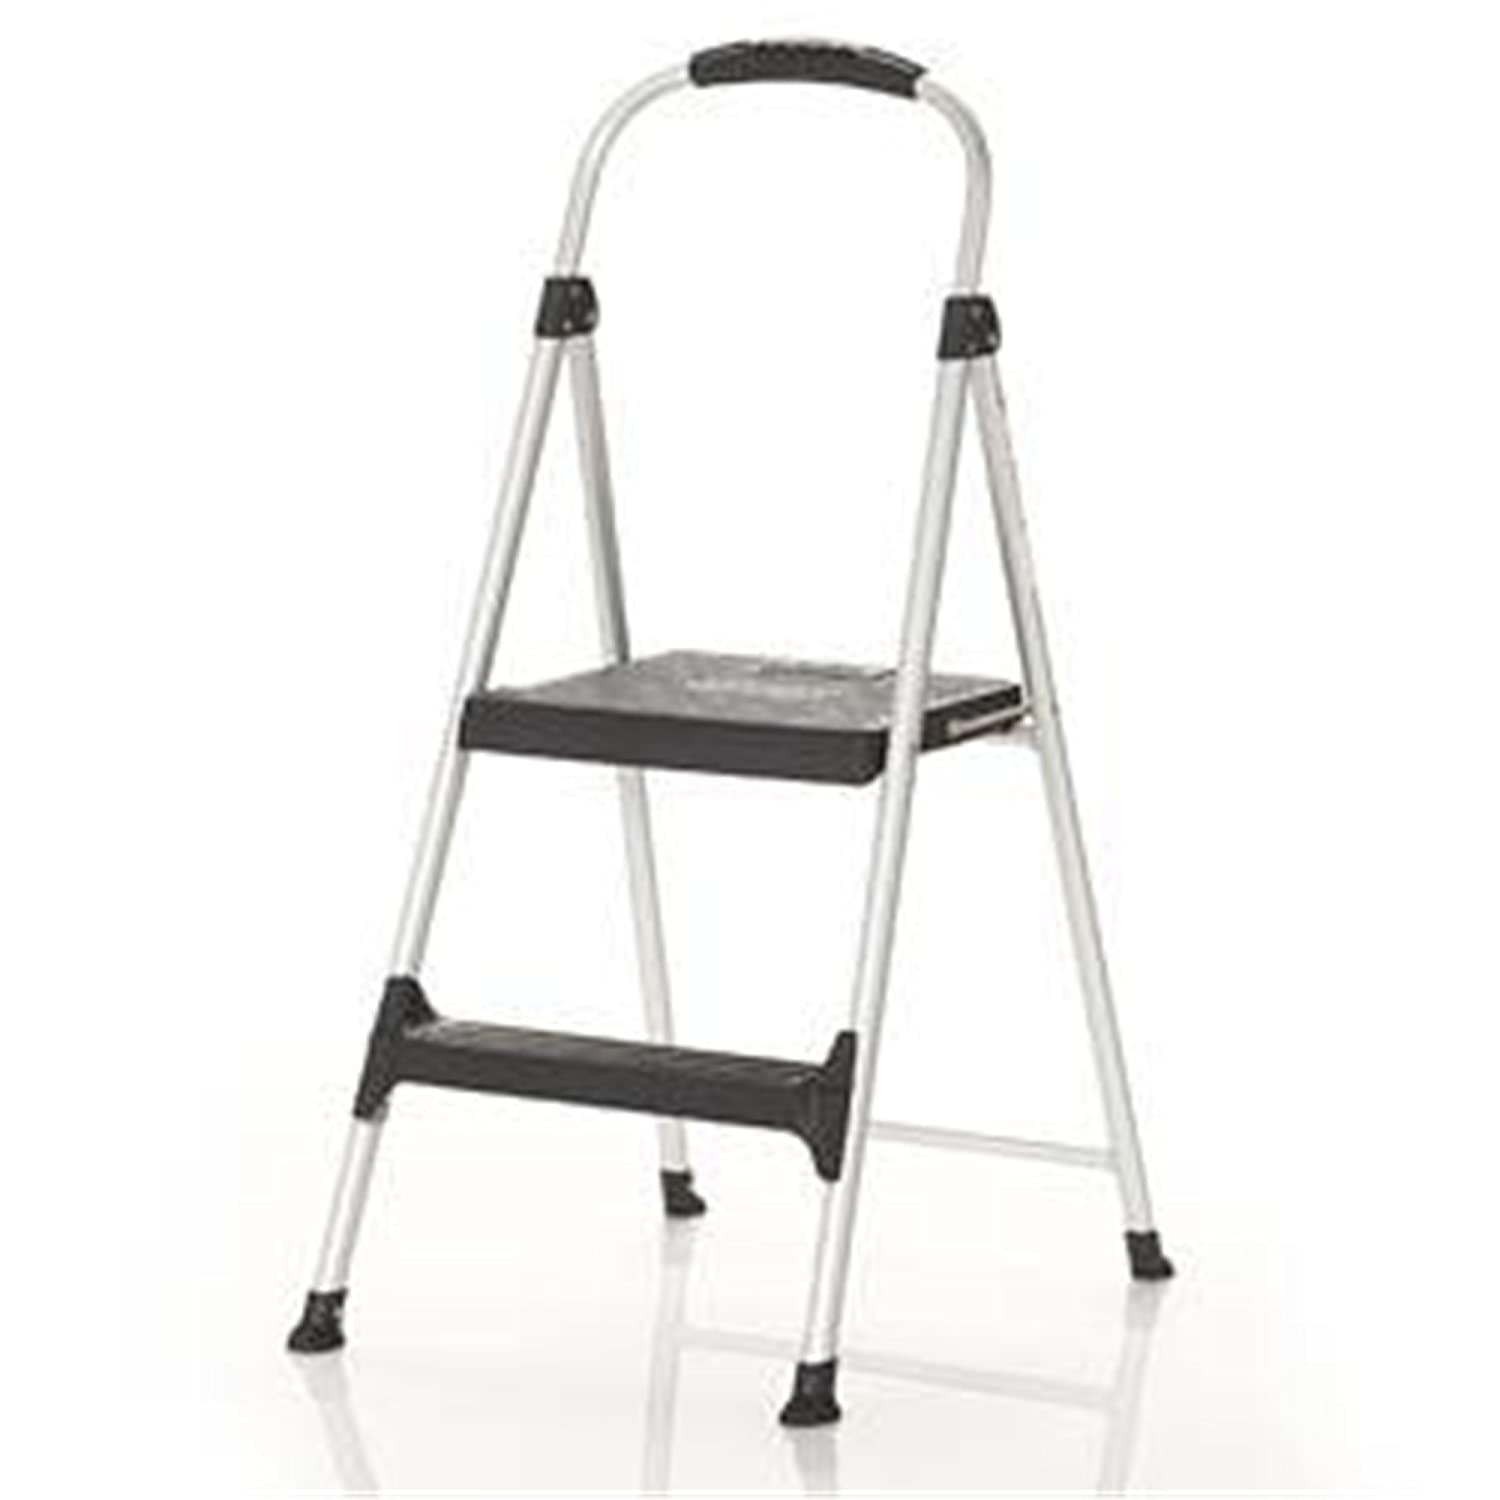 Stools 2 Step Height Assistance Lightweight Secure Large